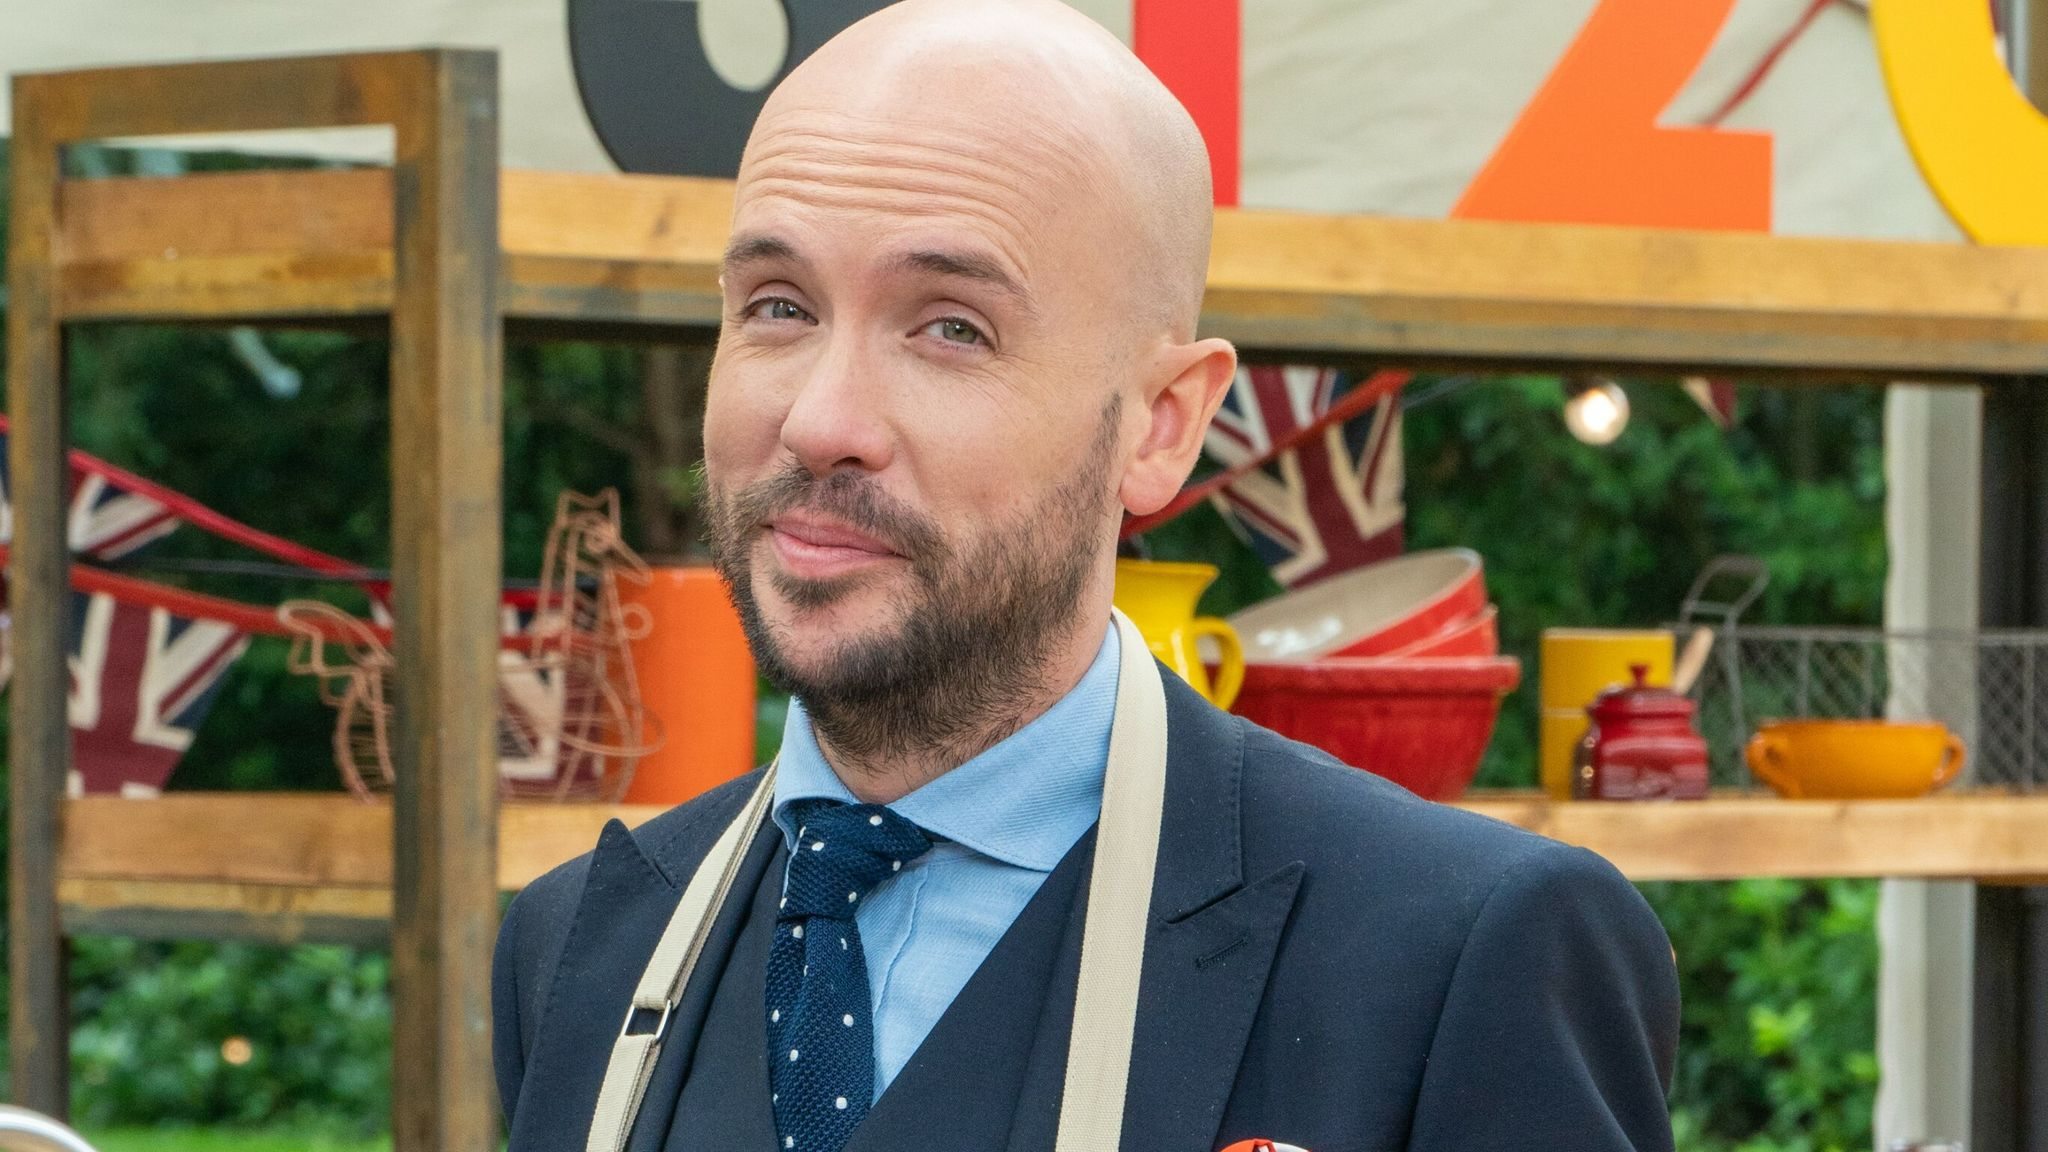 Tom Allen is taking part in The Great Celebrity Bake Off. Pic: Channel 4